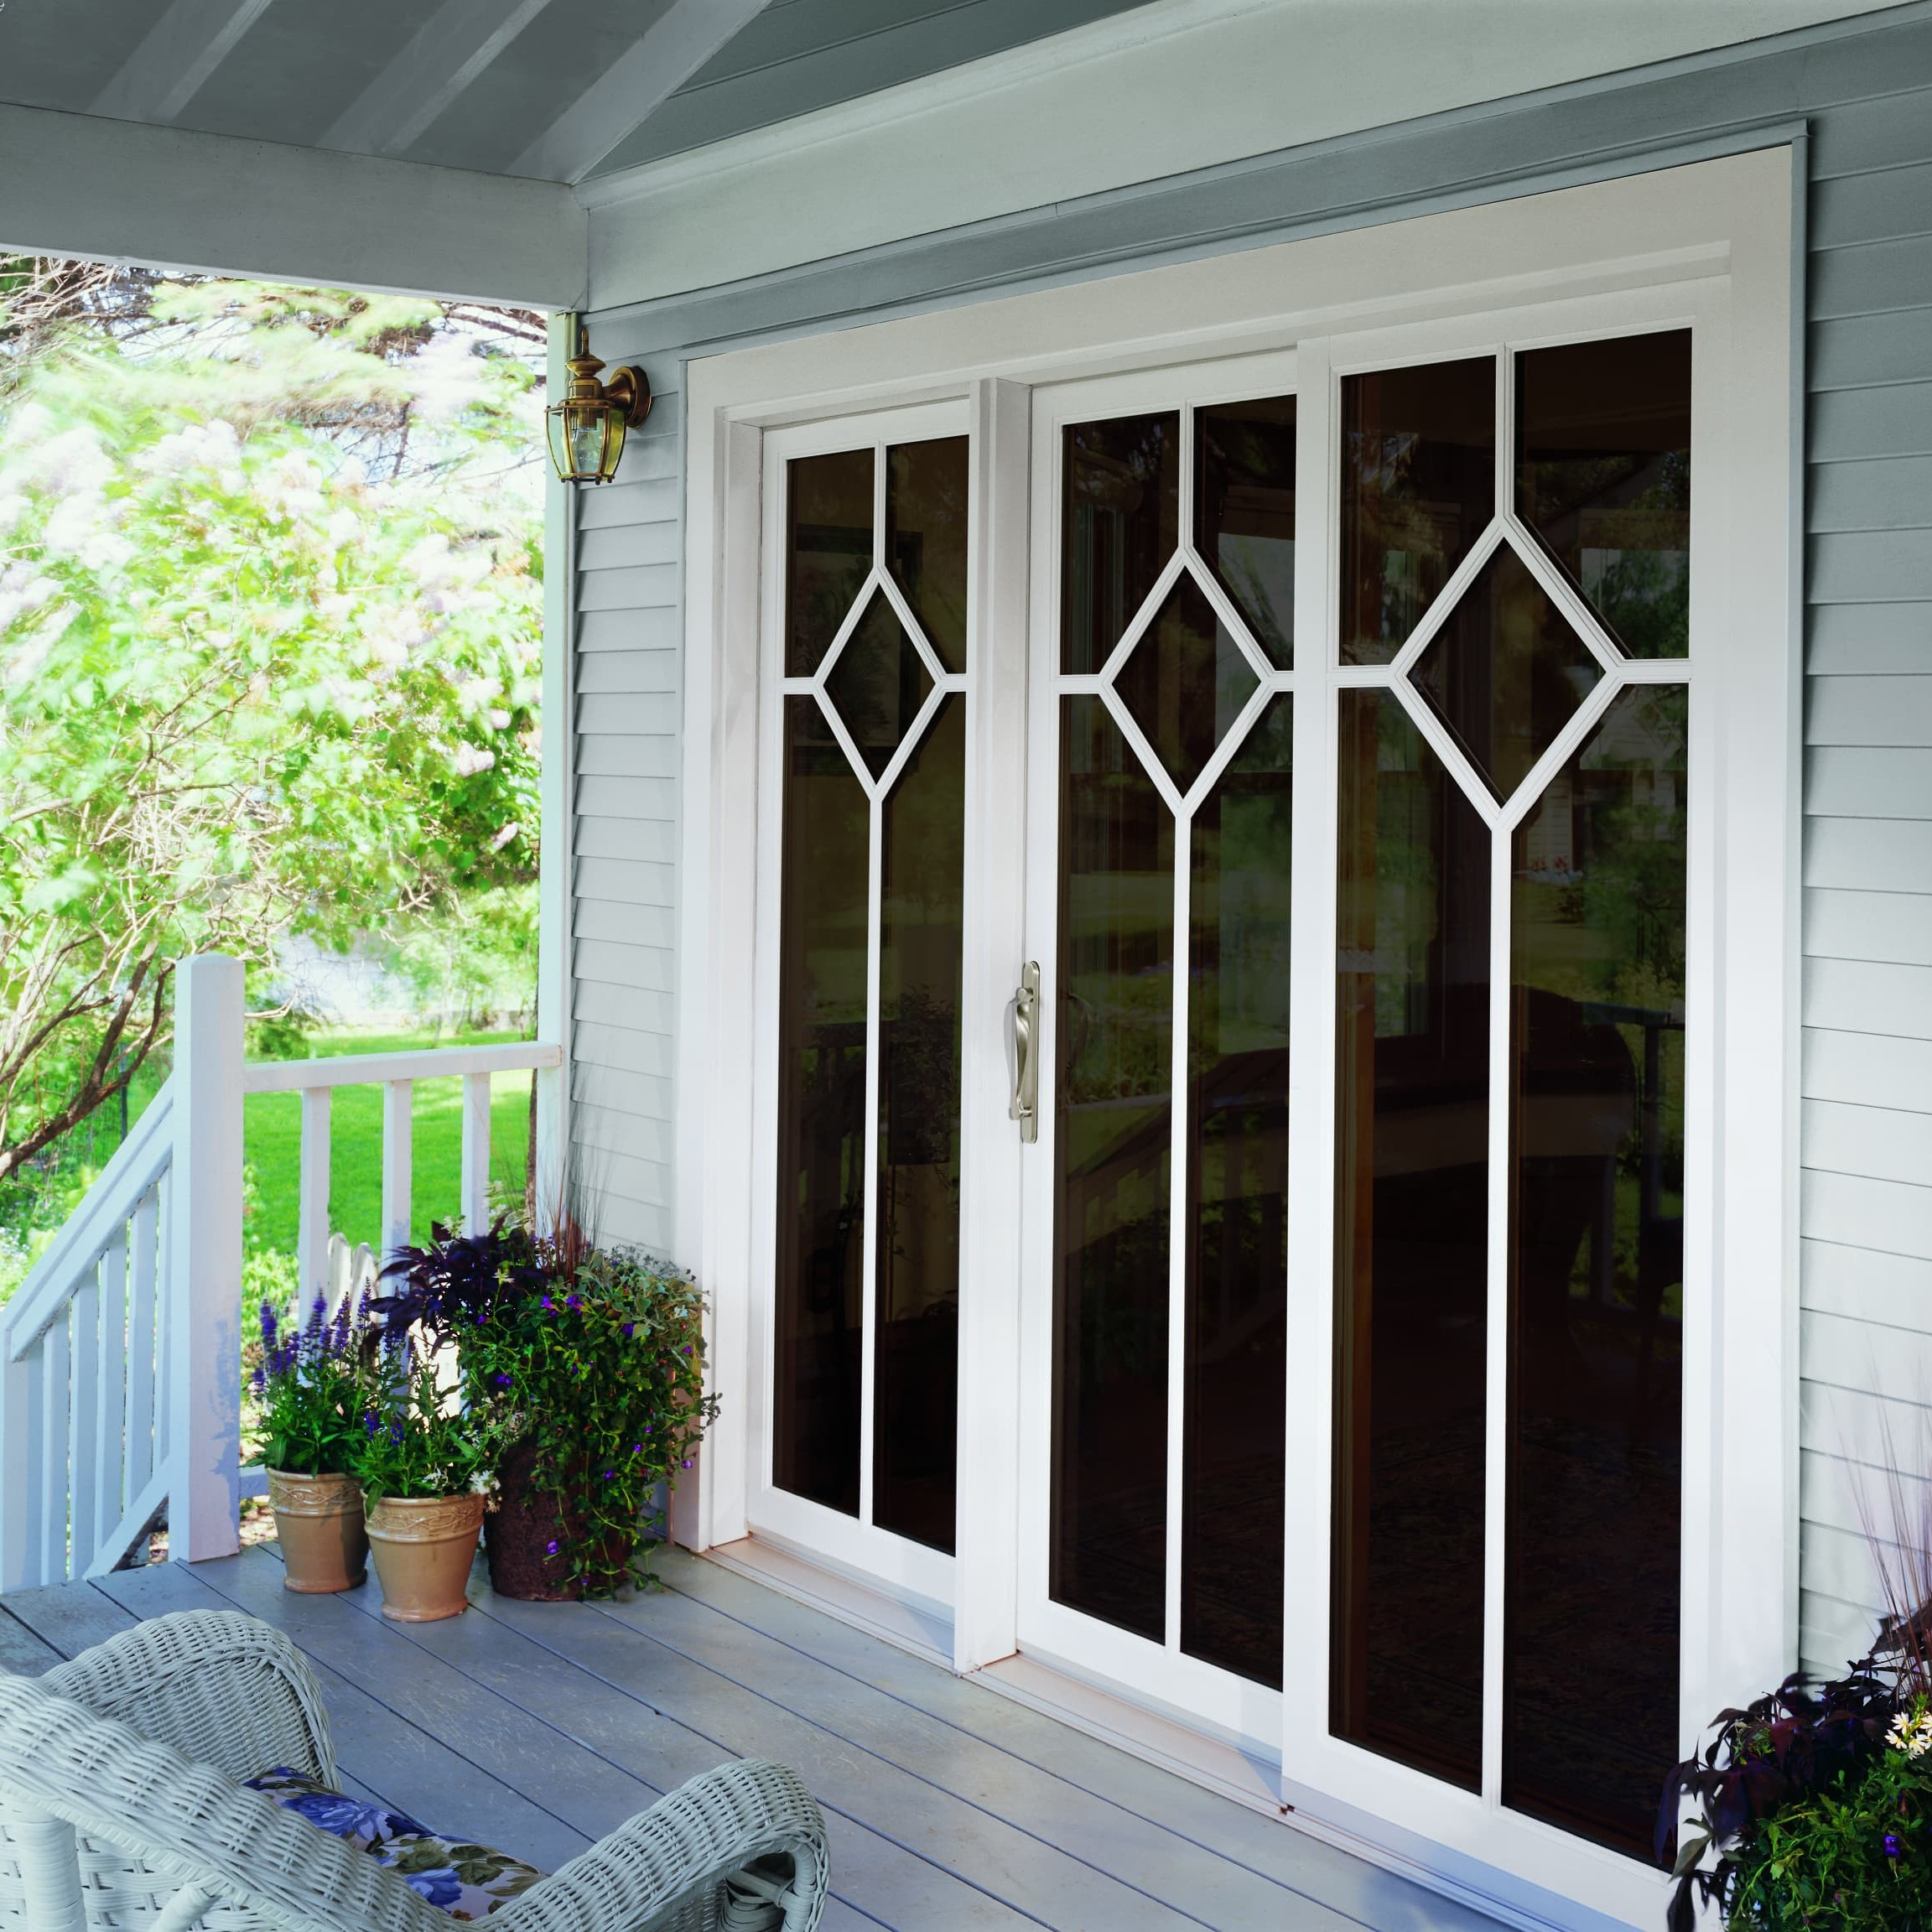 External photo of sliding patio door from porch